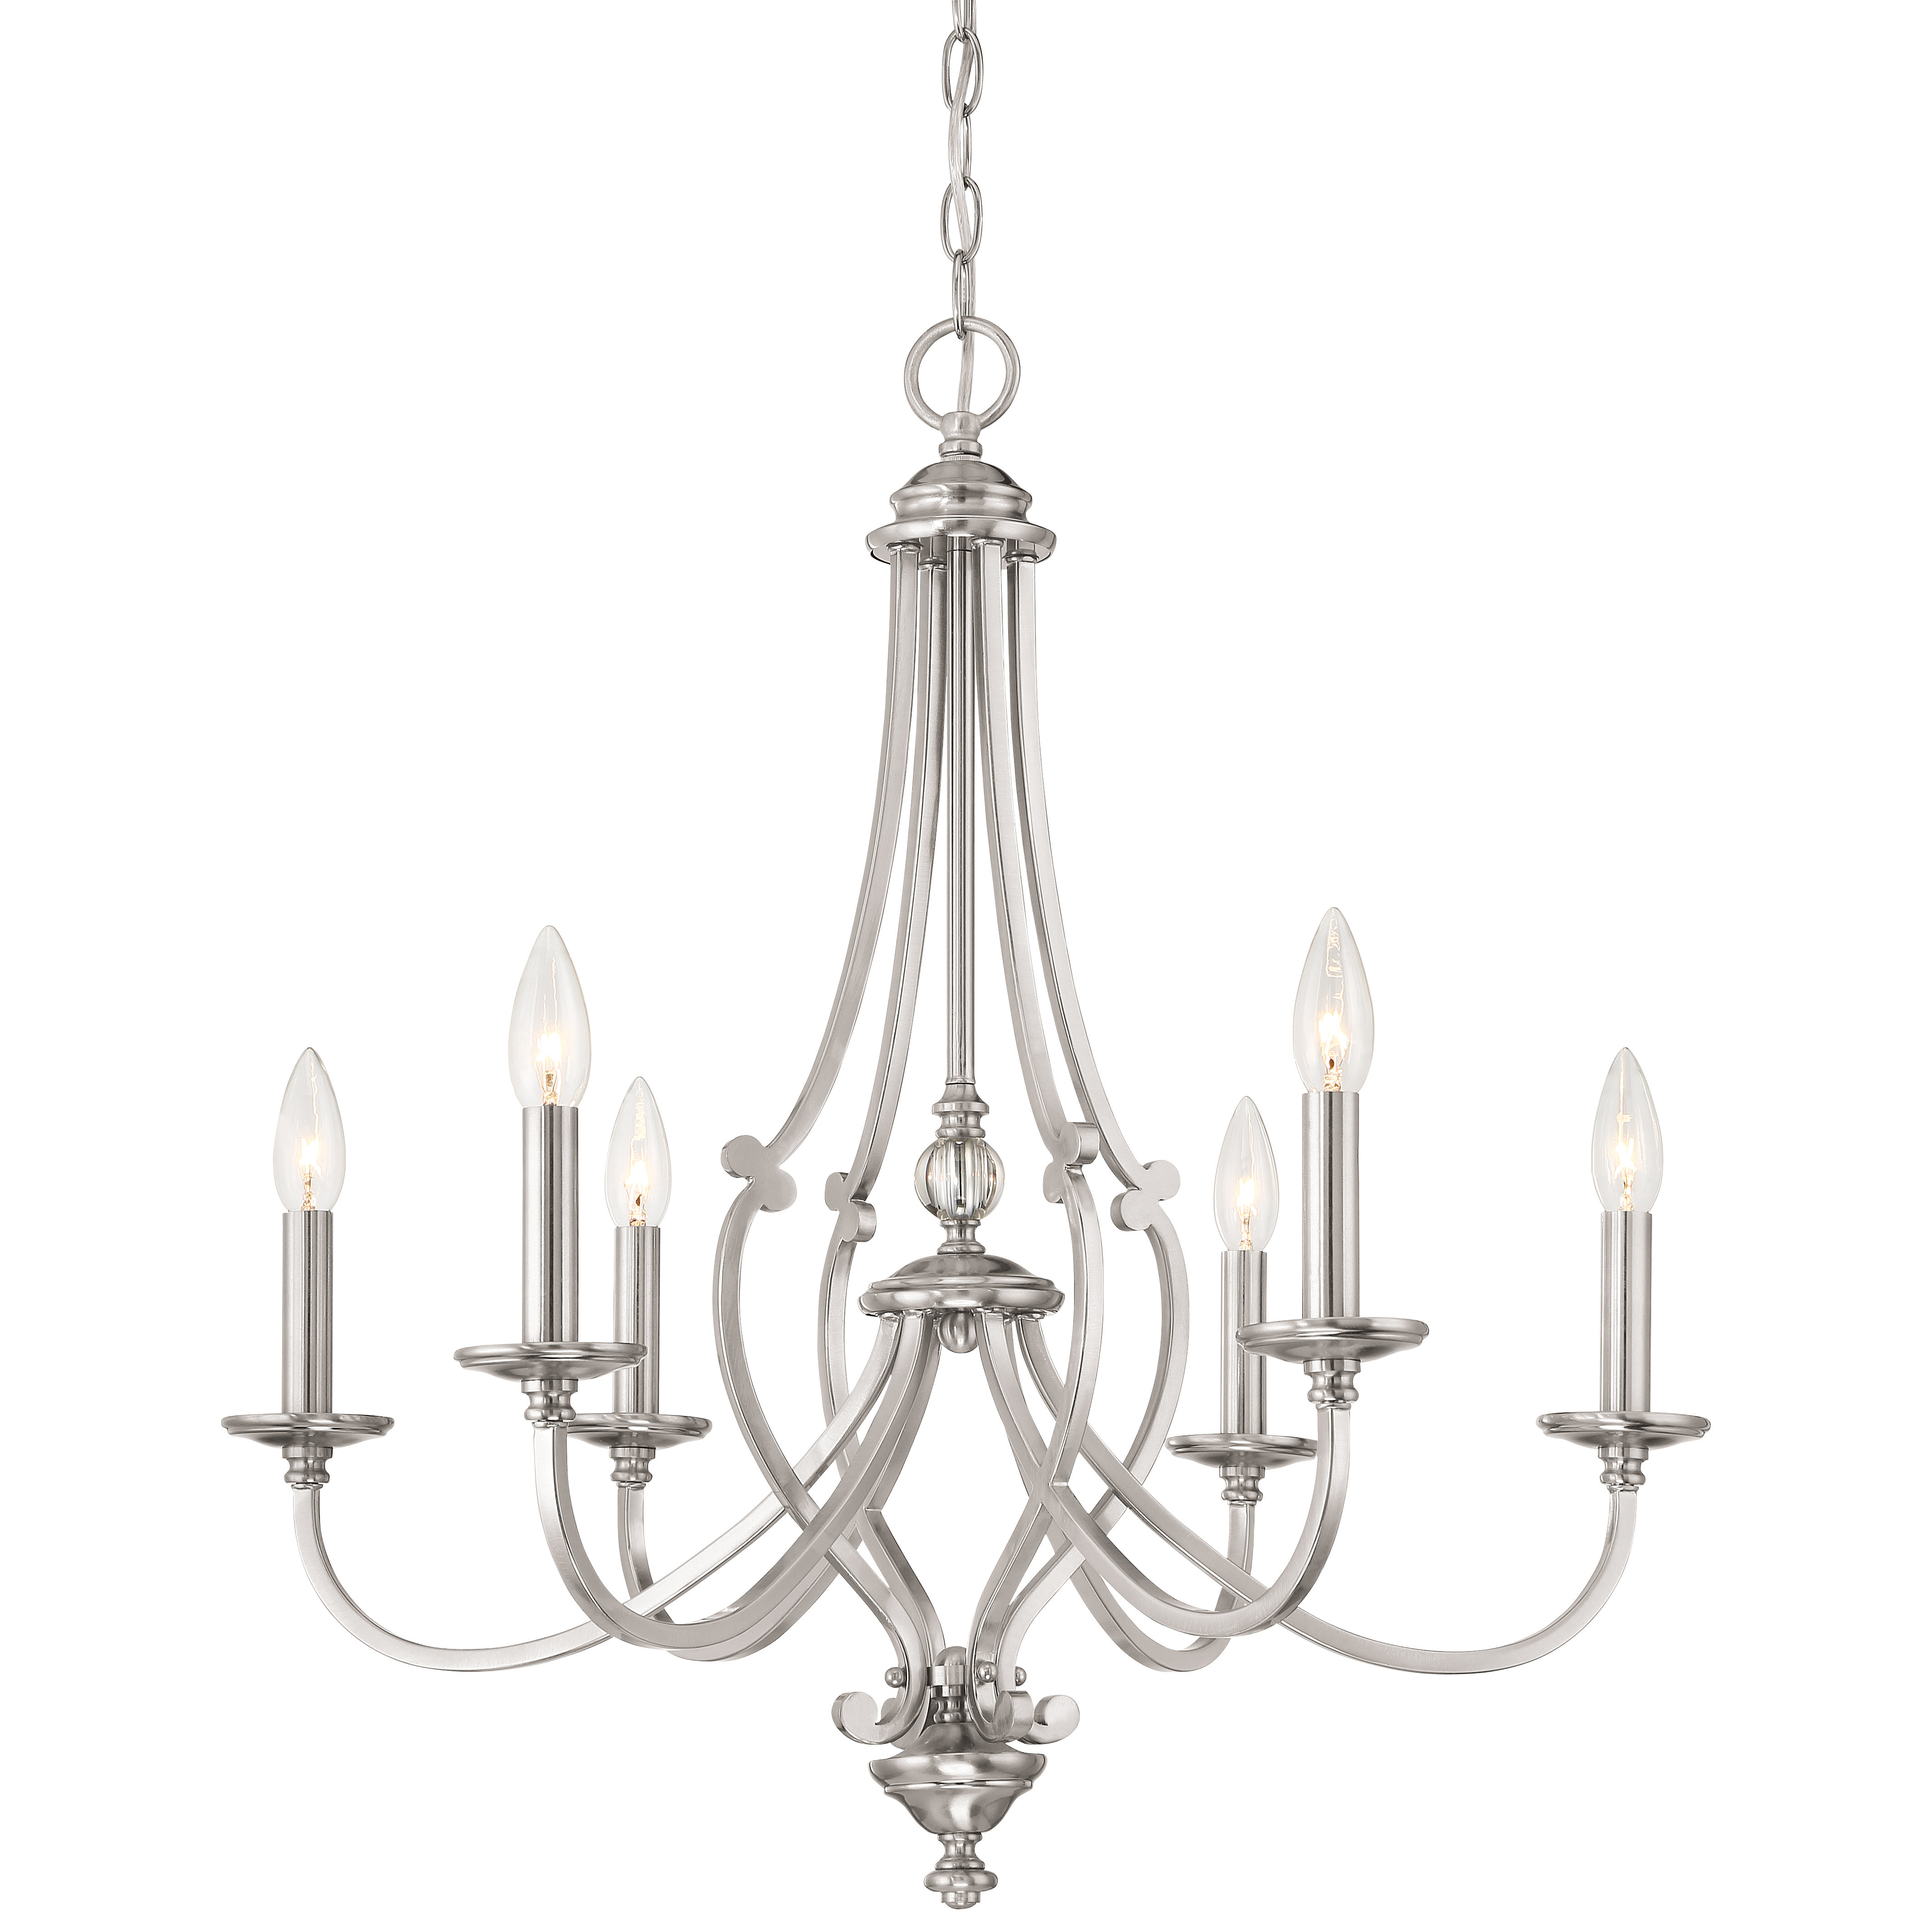 Newest Audane 6-Light Chandelier inside Berger 5-Light Candle Style Chandeliers